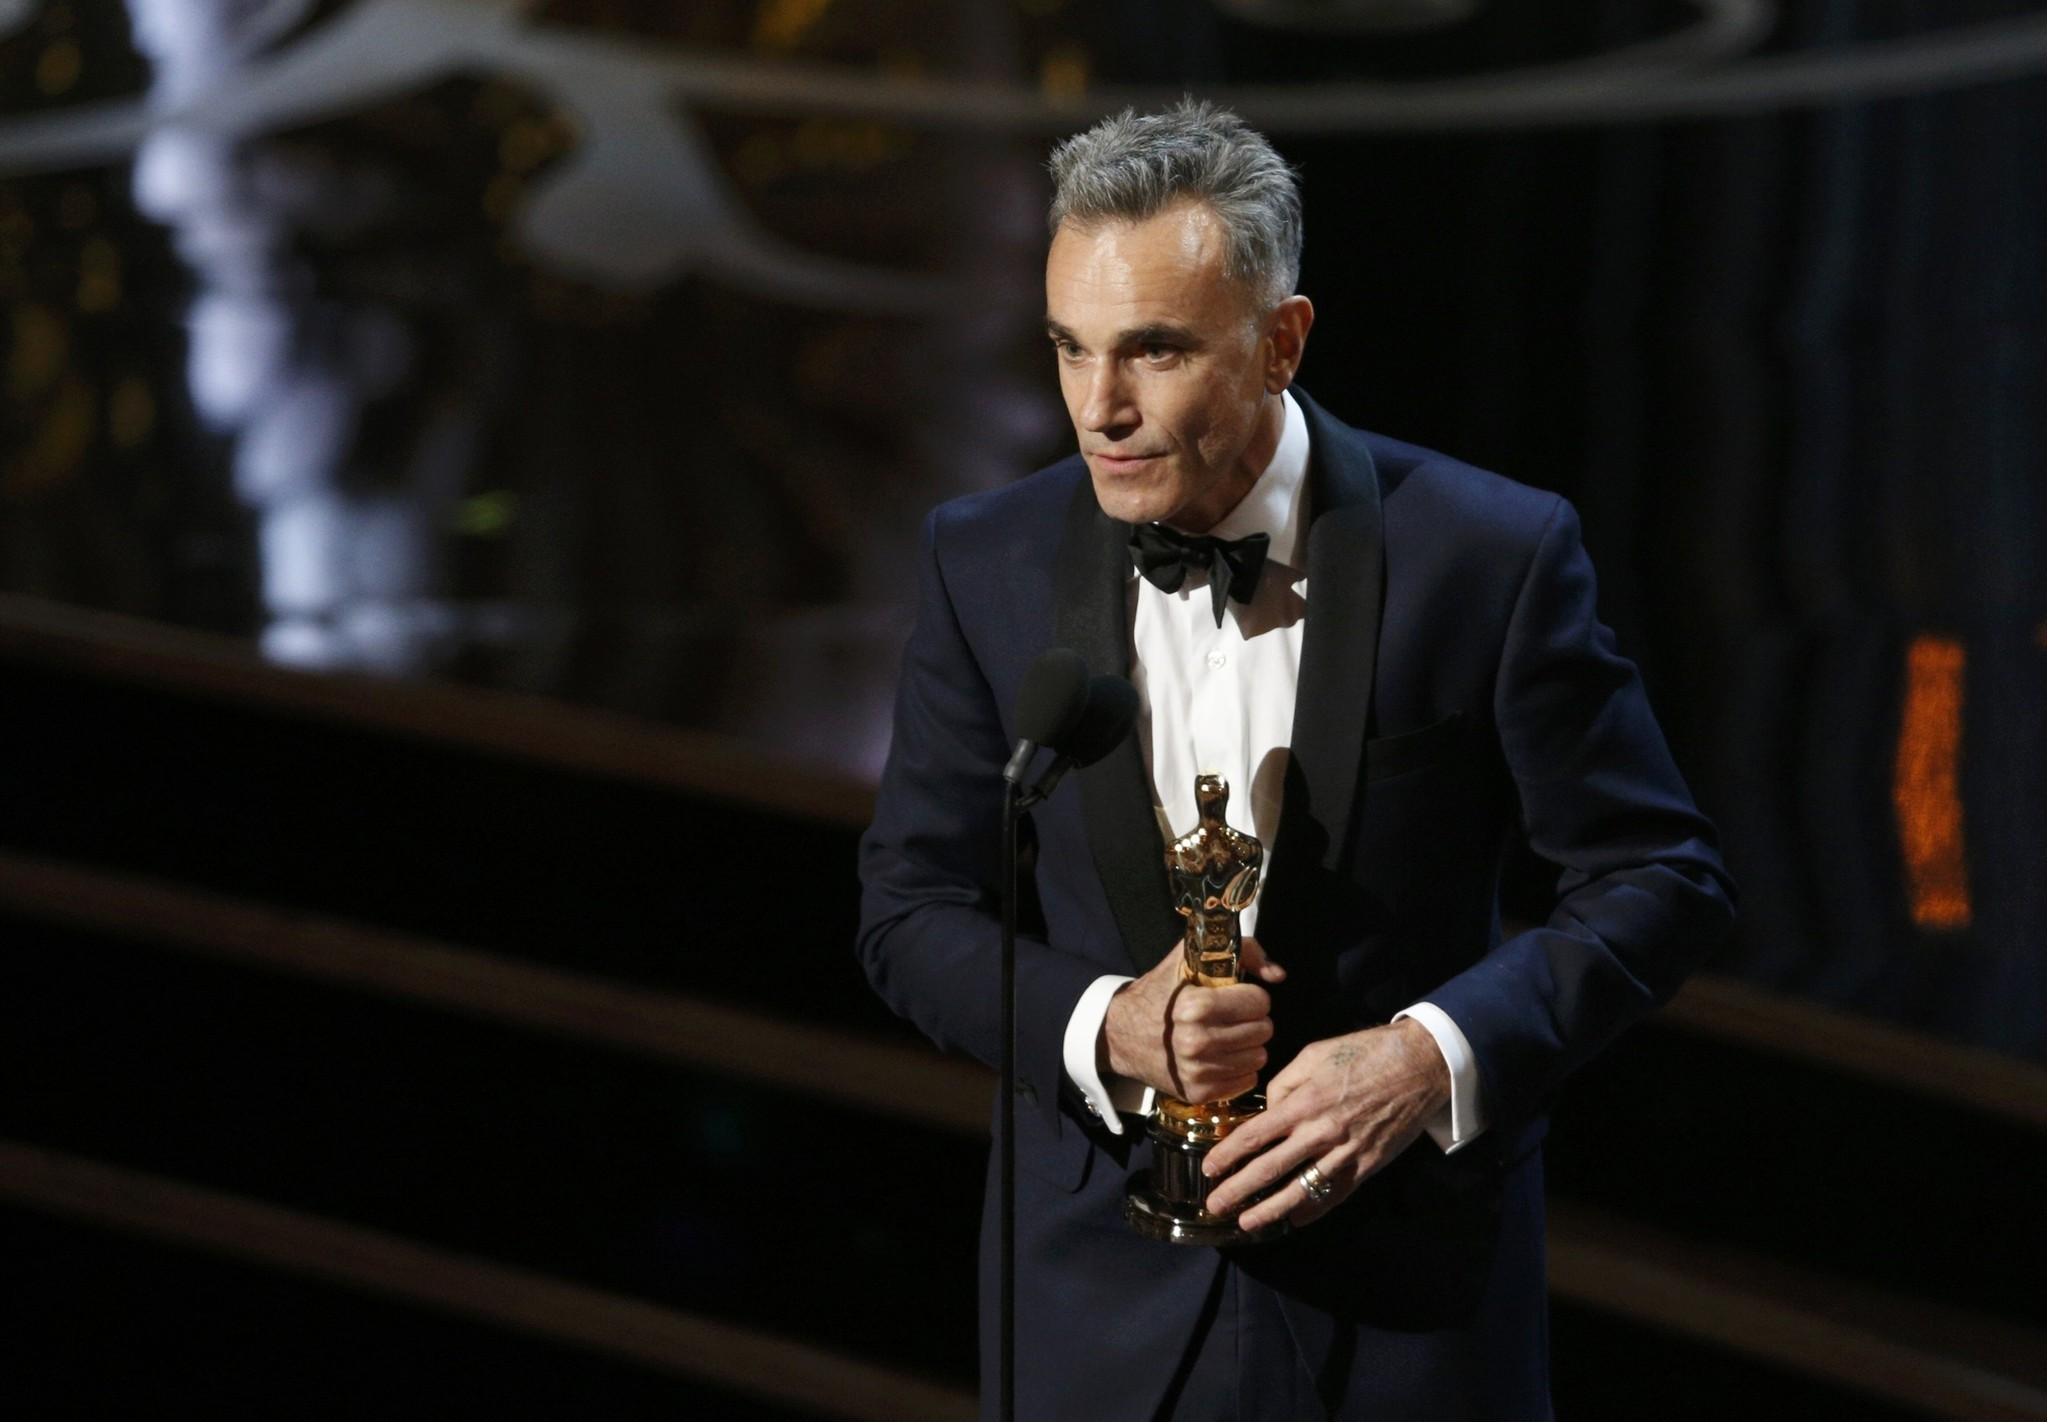 Daniel Day Lewis accepts the Oscar for best actor for his role in ,Lincoln,, at the 85th Academy Awards in Hollywood, California, February 24, 2013. (REUTERS Photo)